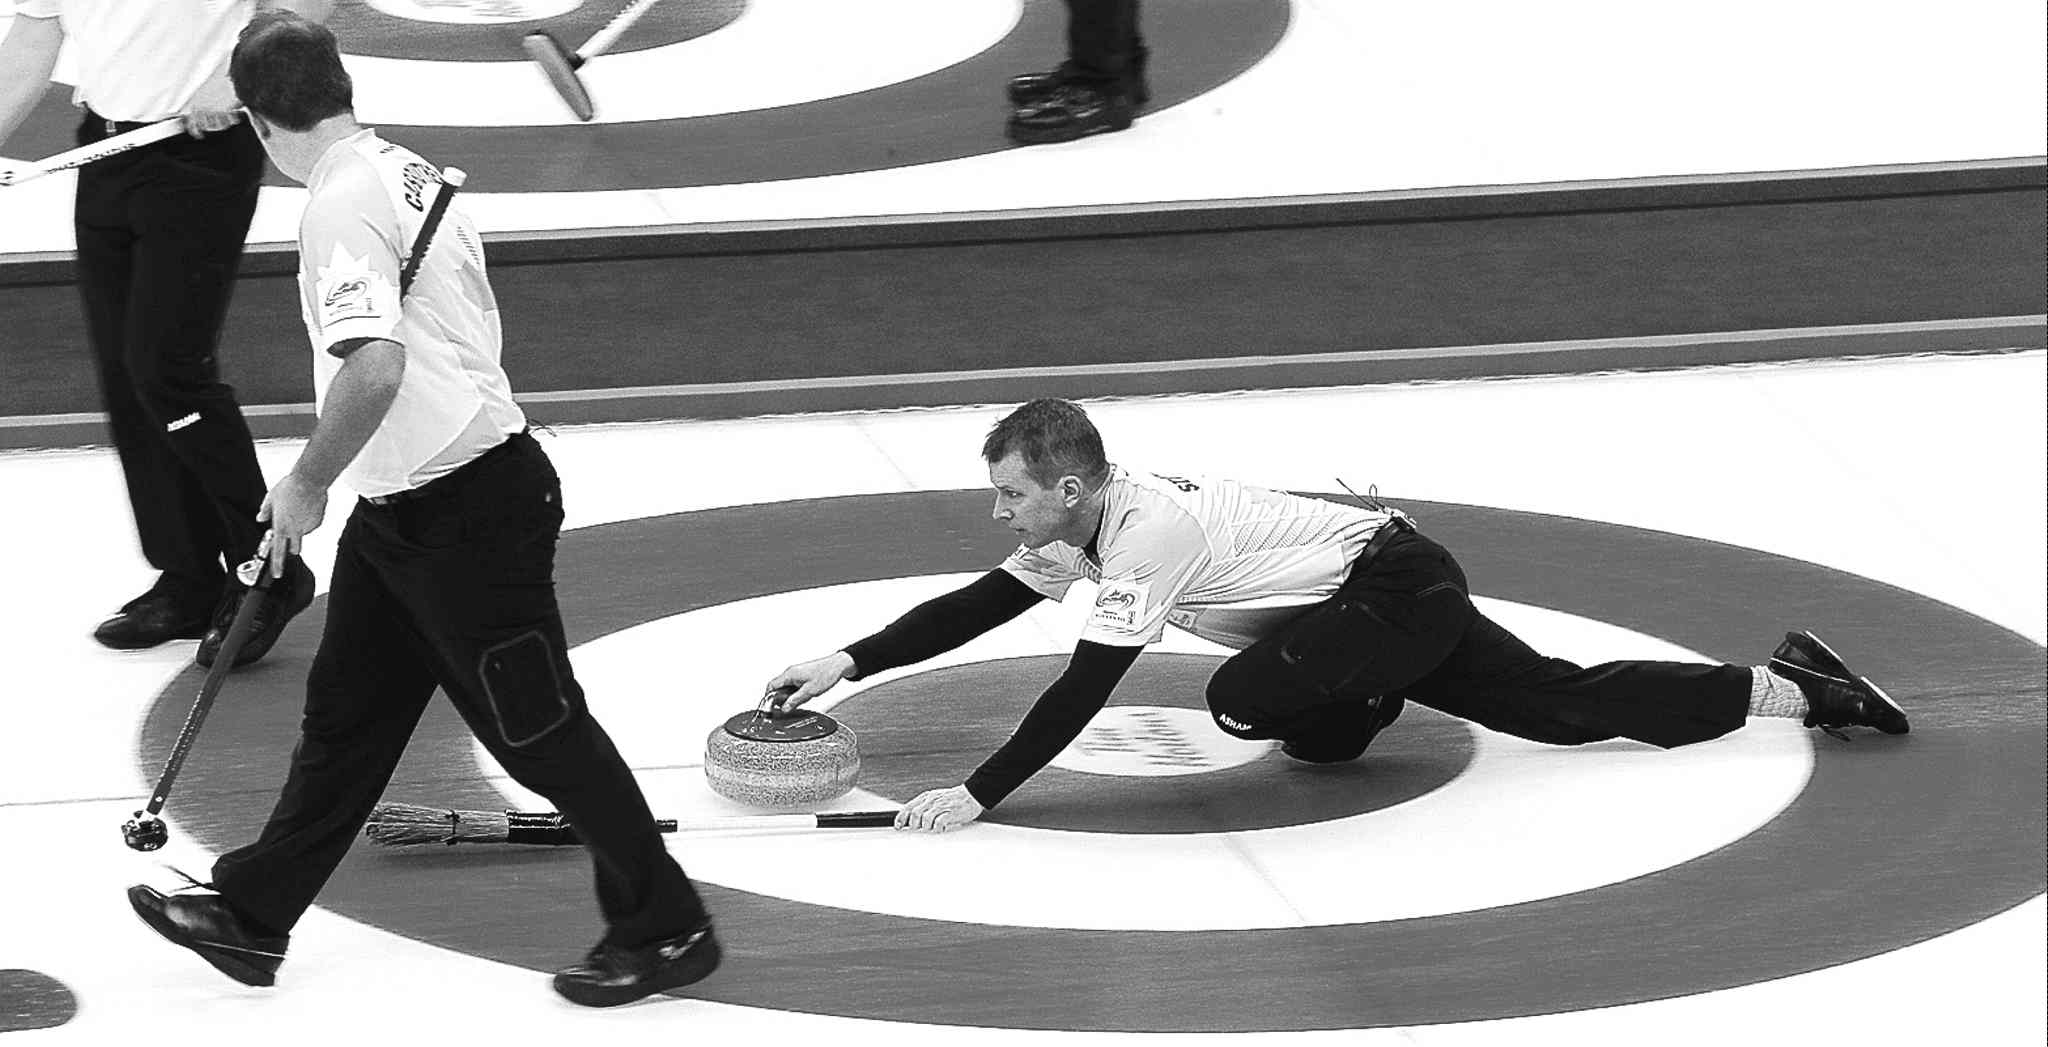 MIKE DEAL / WINNIPEG FREE PRESS archivesSkip Jeff Stoughton throws a rock on Dec. 2 during the Roar of the Rings at the MTS Centre.